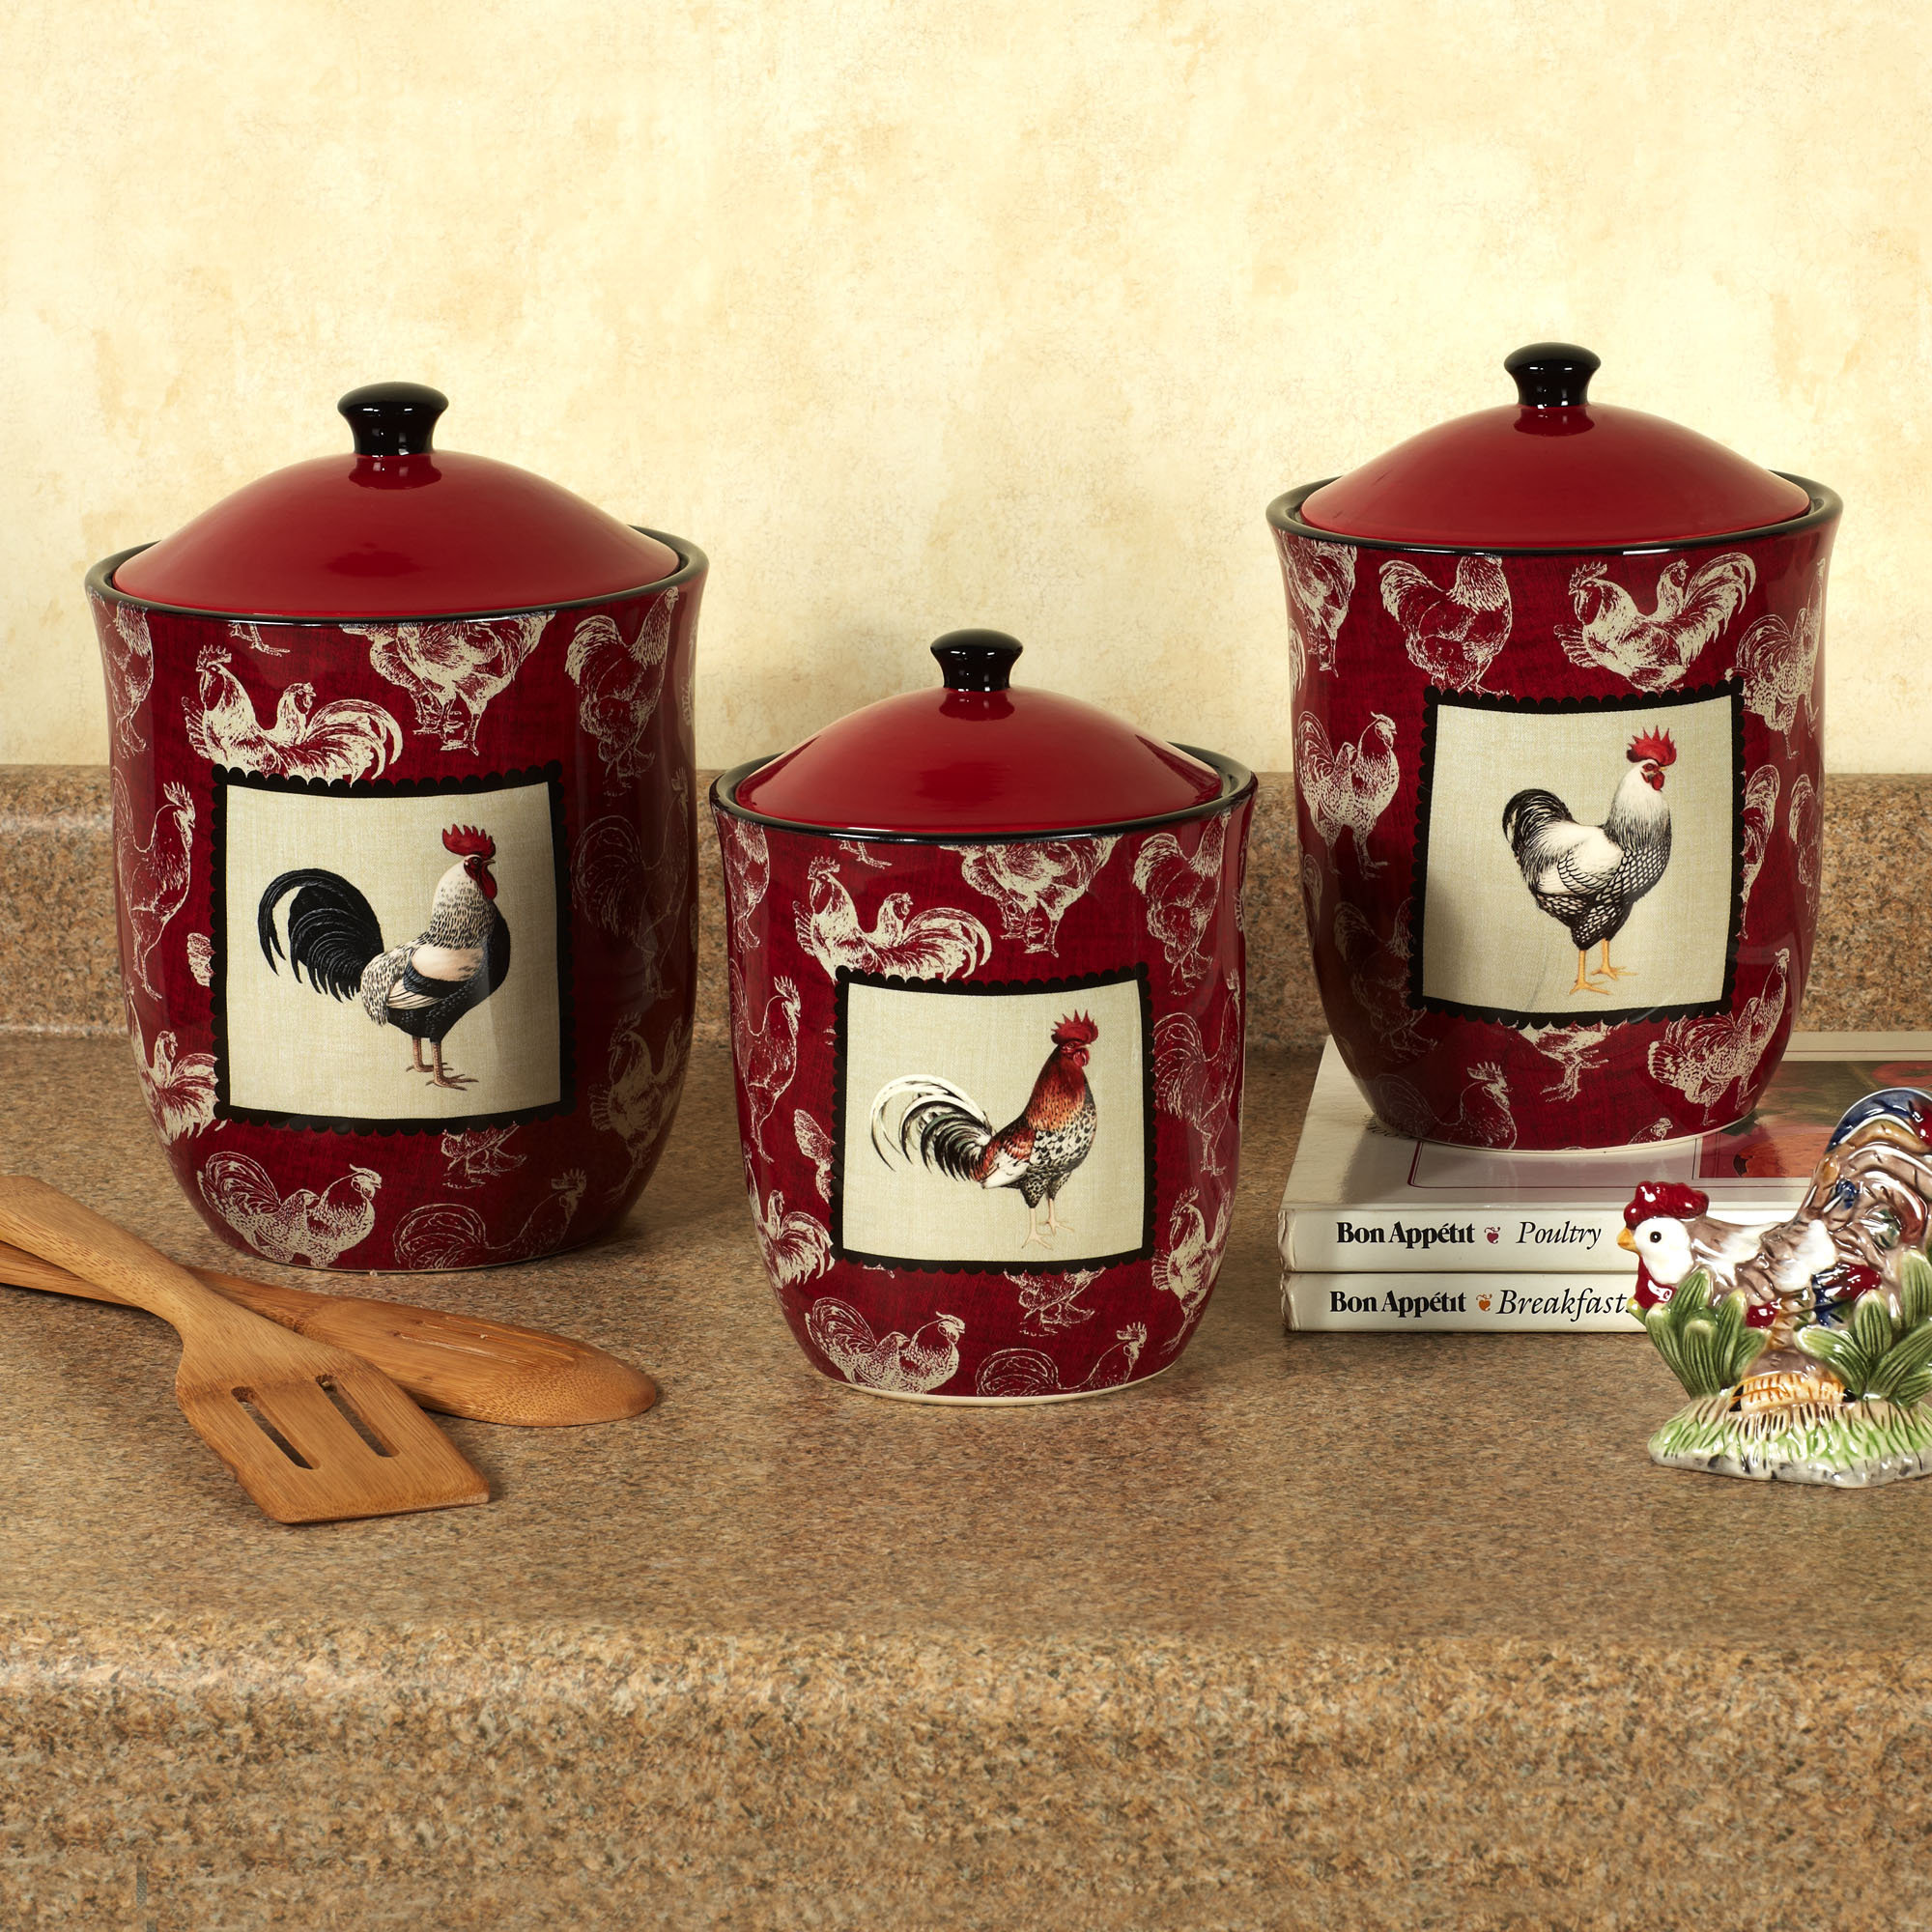 Charming Roosters For Kitchen Decor #8: ... Roosters Kitchen Decor Photo - 6 ...